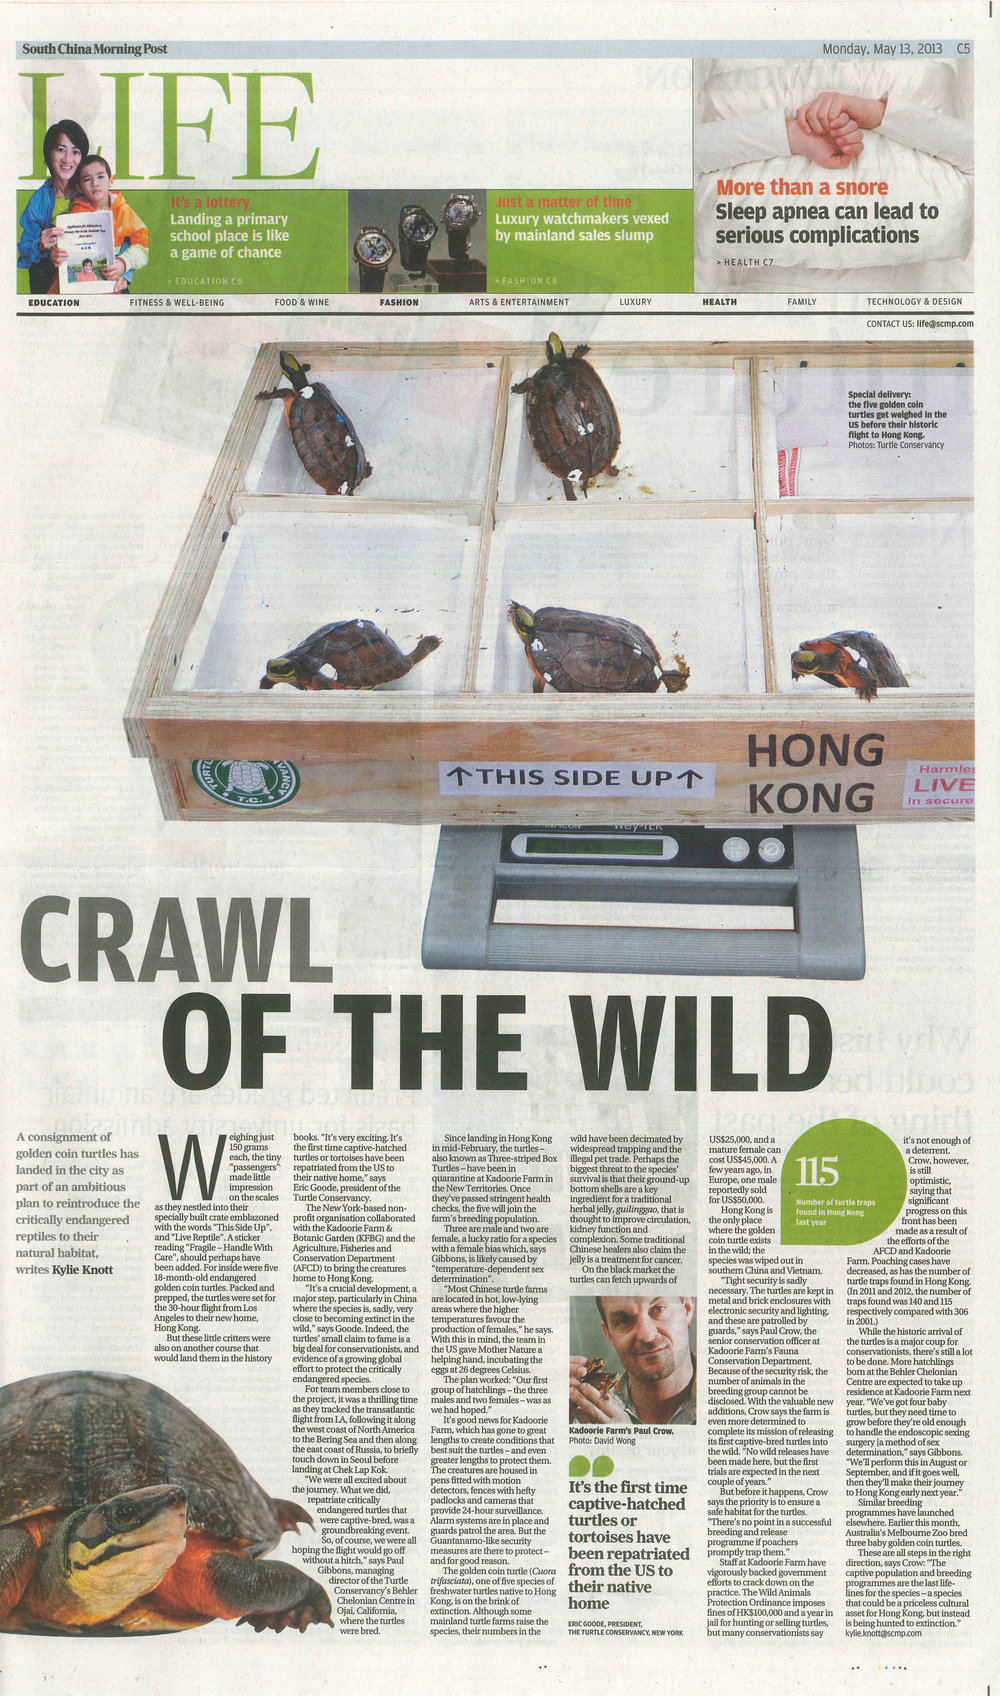 This article publicized the first ever reintroduction of a turtle to its native range from outside the host country. Our goal is to send all future offspring back to Kadoorie farms to aid their efforts.